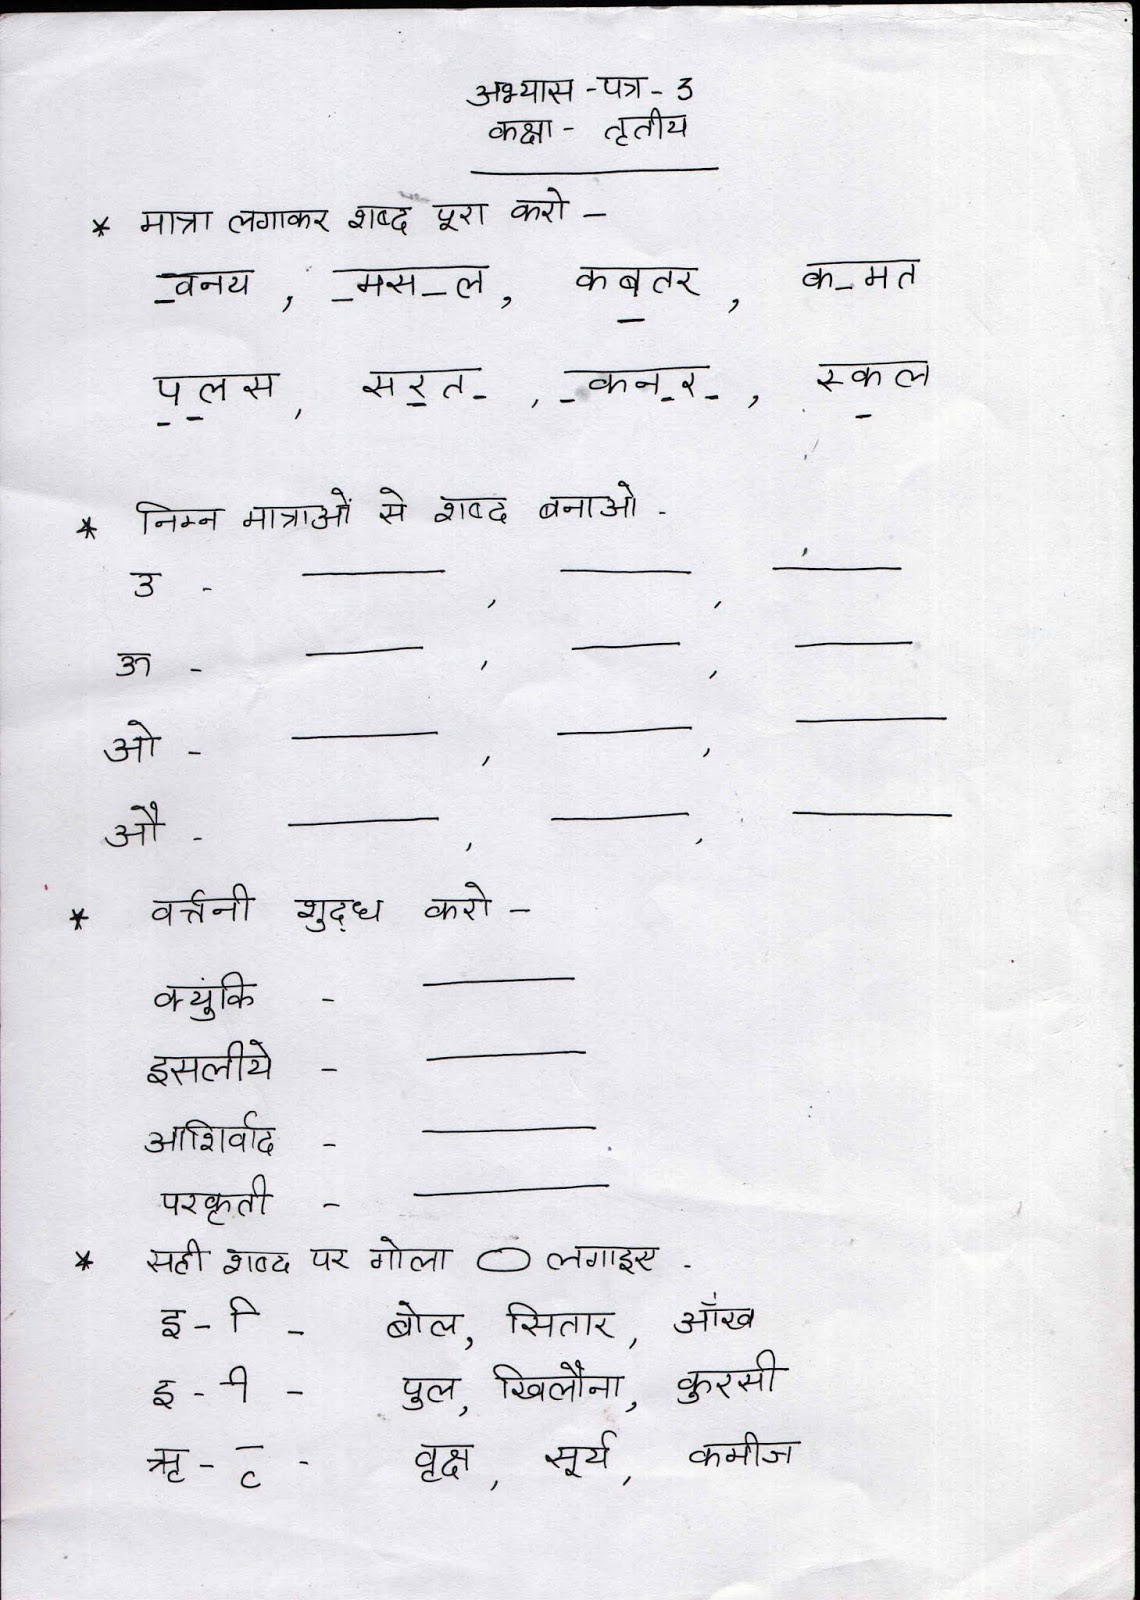 Worksheet Of Hindi For Class 5